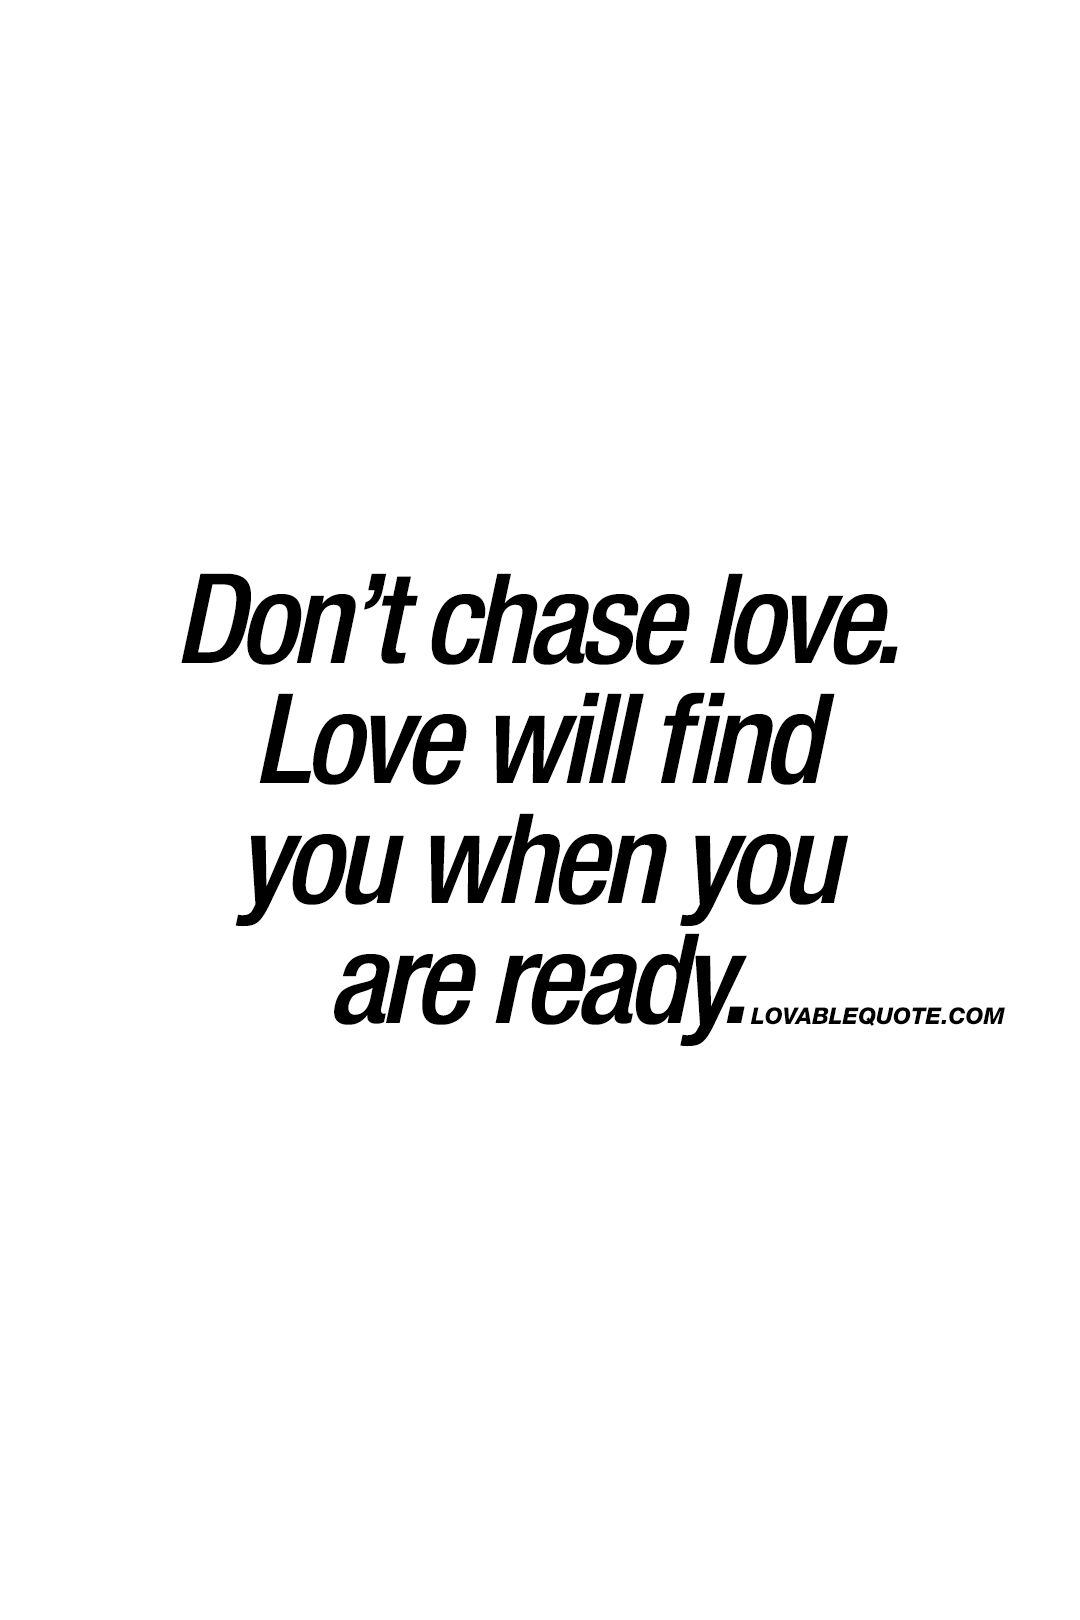 Love Quotes You Will Find: Don't Chase Love. Love Will Find You When You Are Ready